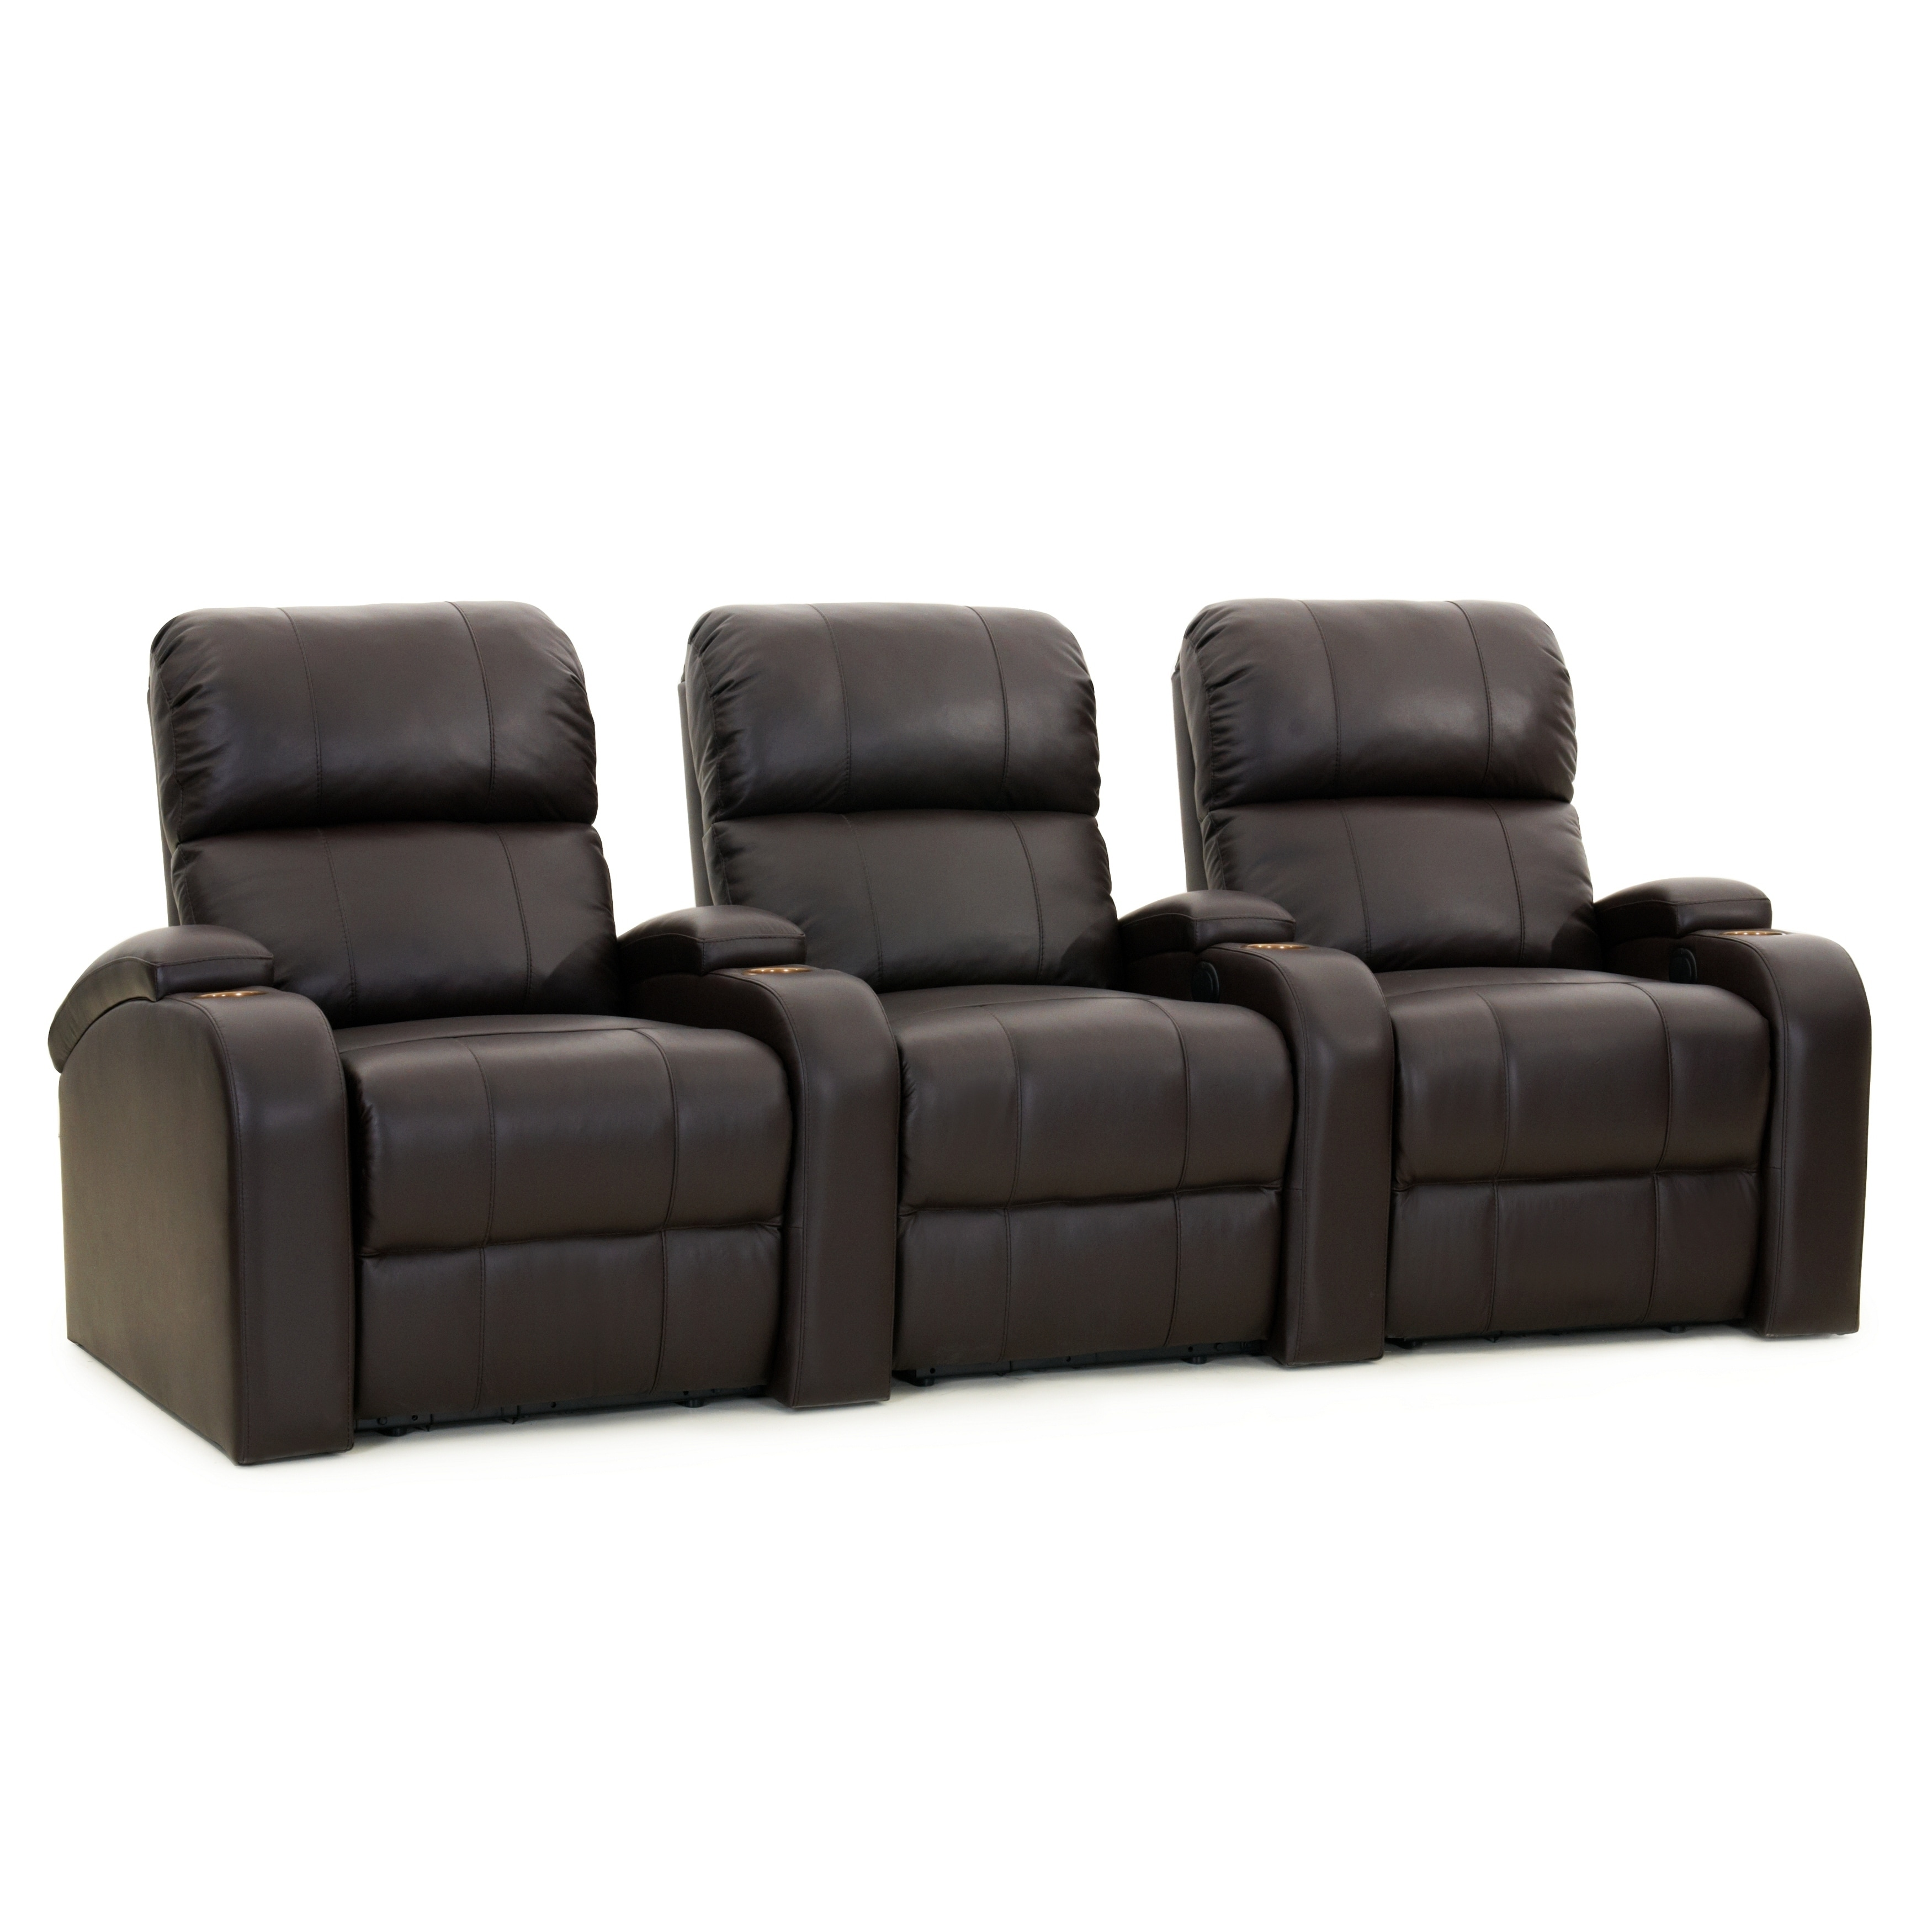 theater chairs best buy dog chair covers uk recliner and rocking recliners online at